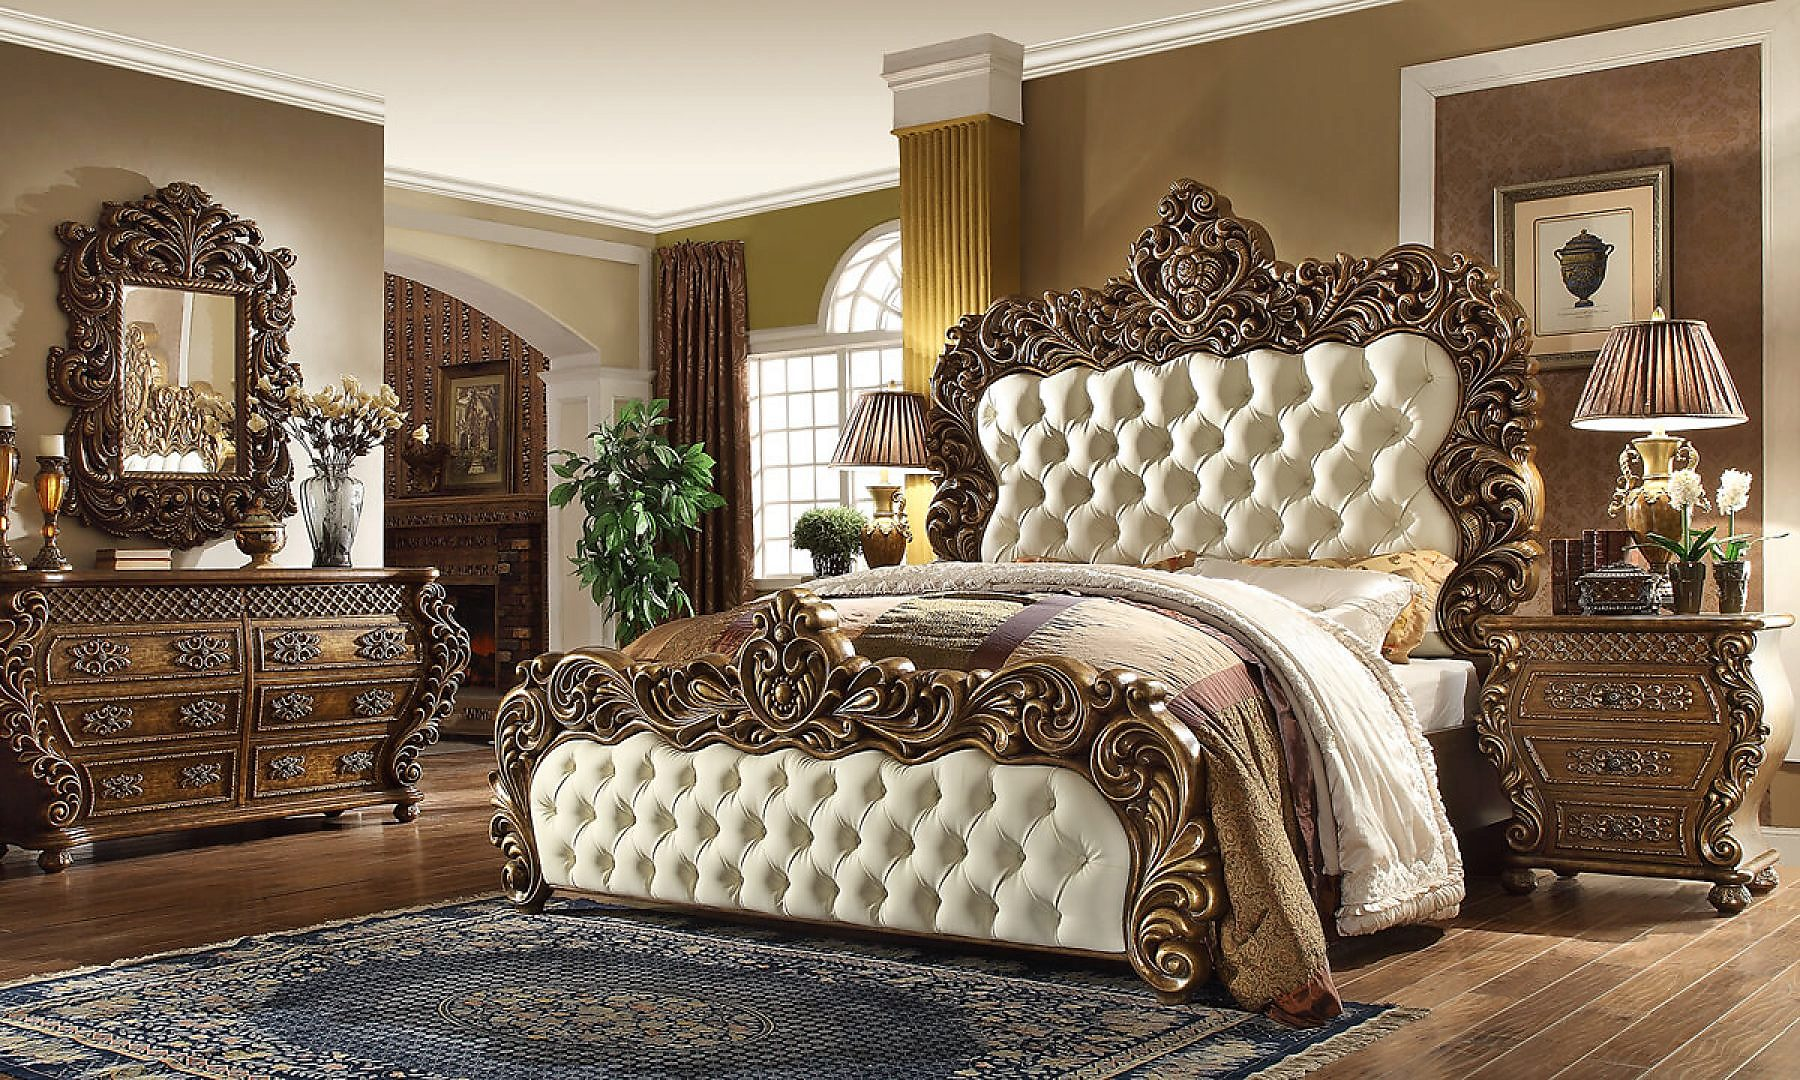 Traditional California King Bedroom Set 5 PCS in Brown Leather Traditional Style Homey Design HD-8011